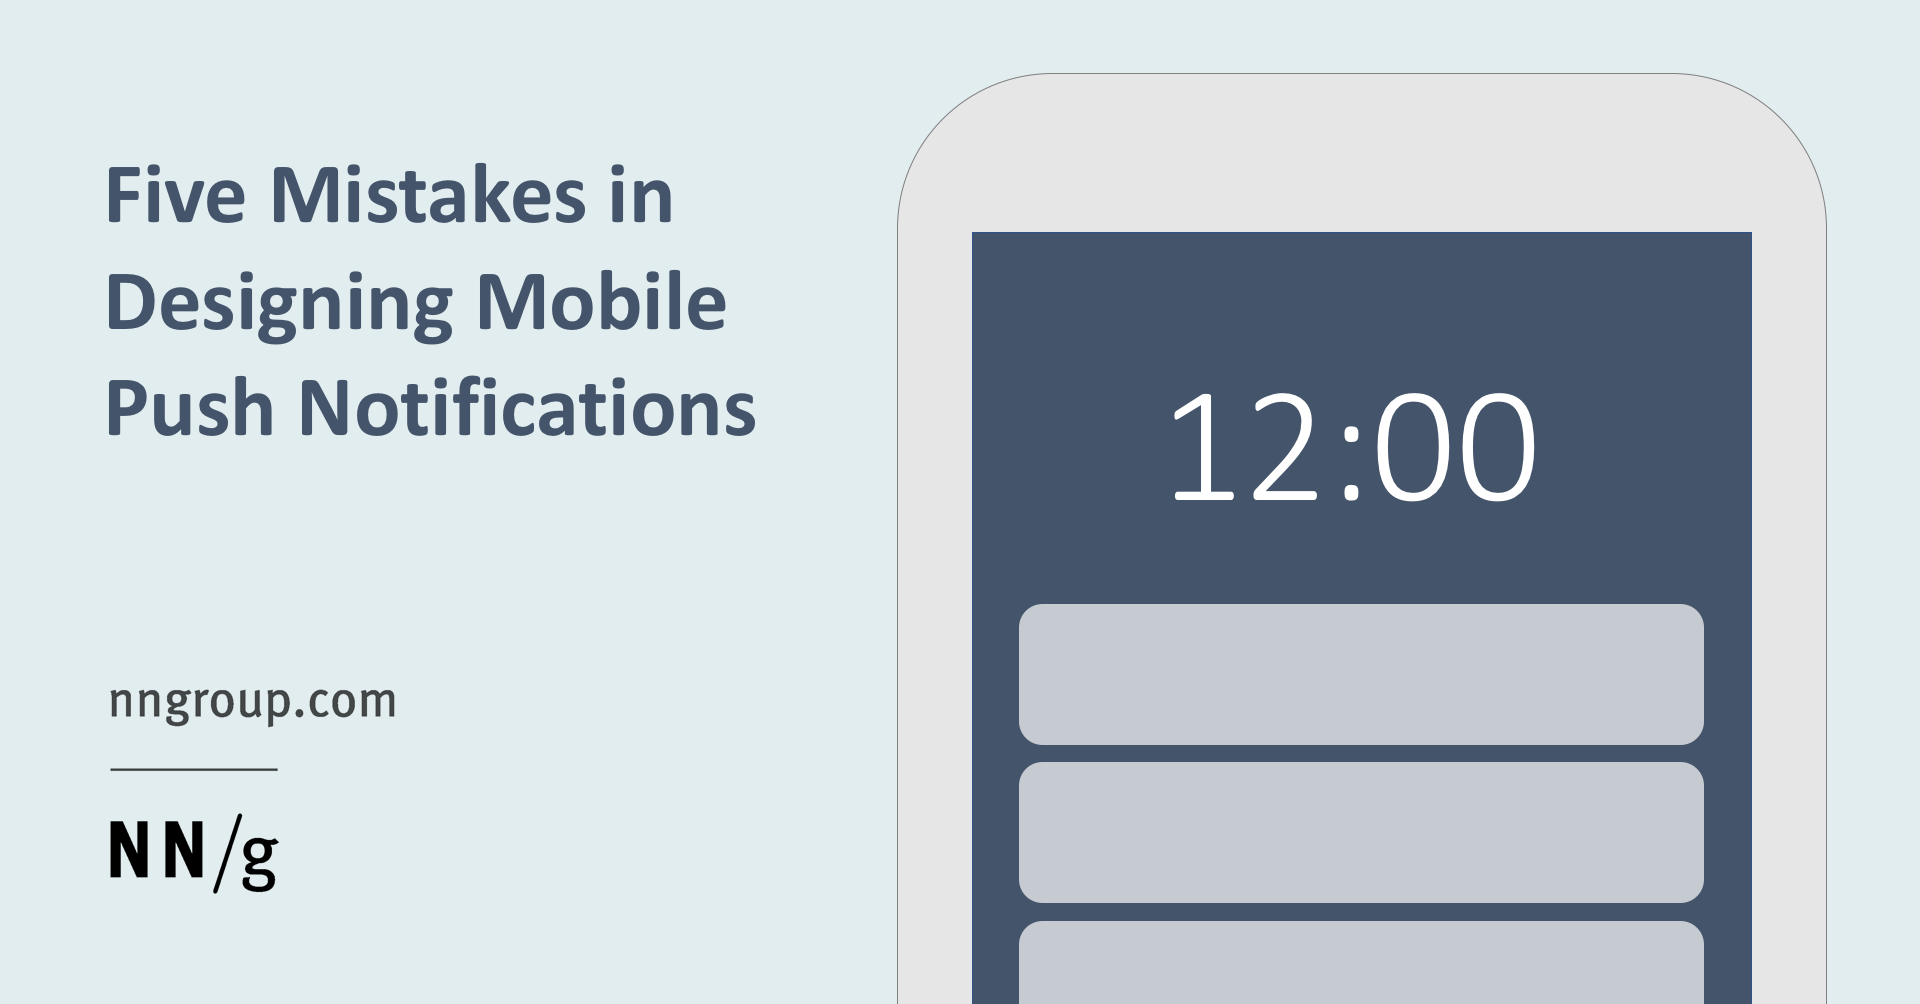 Five Mistakes in Designing Mobile Push Notifications